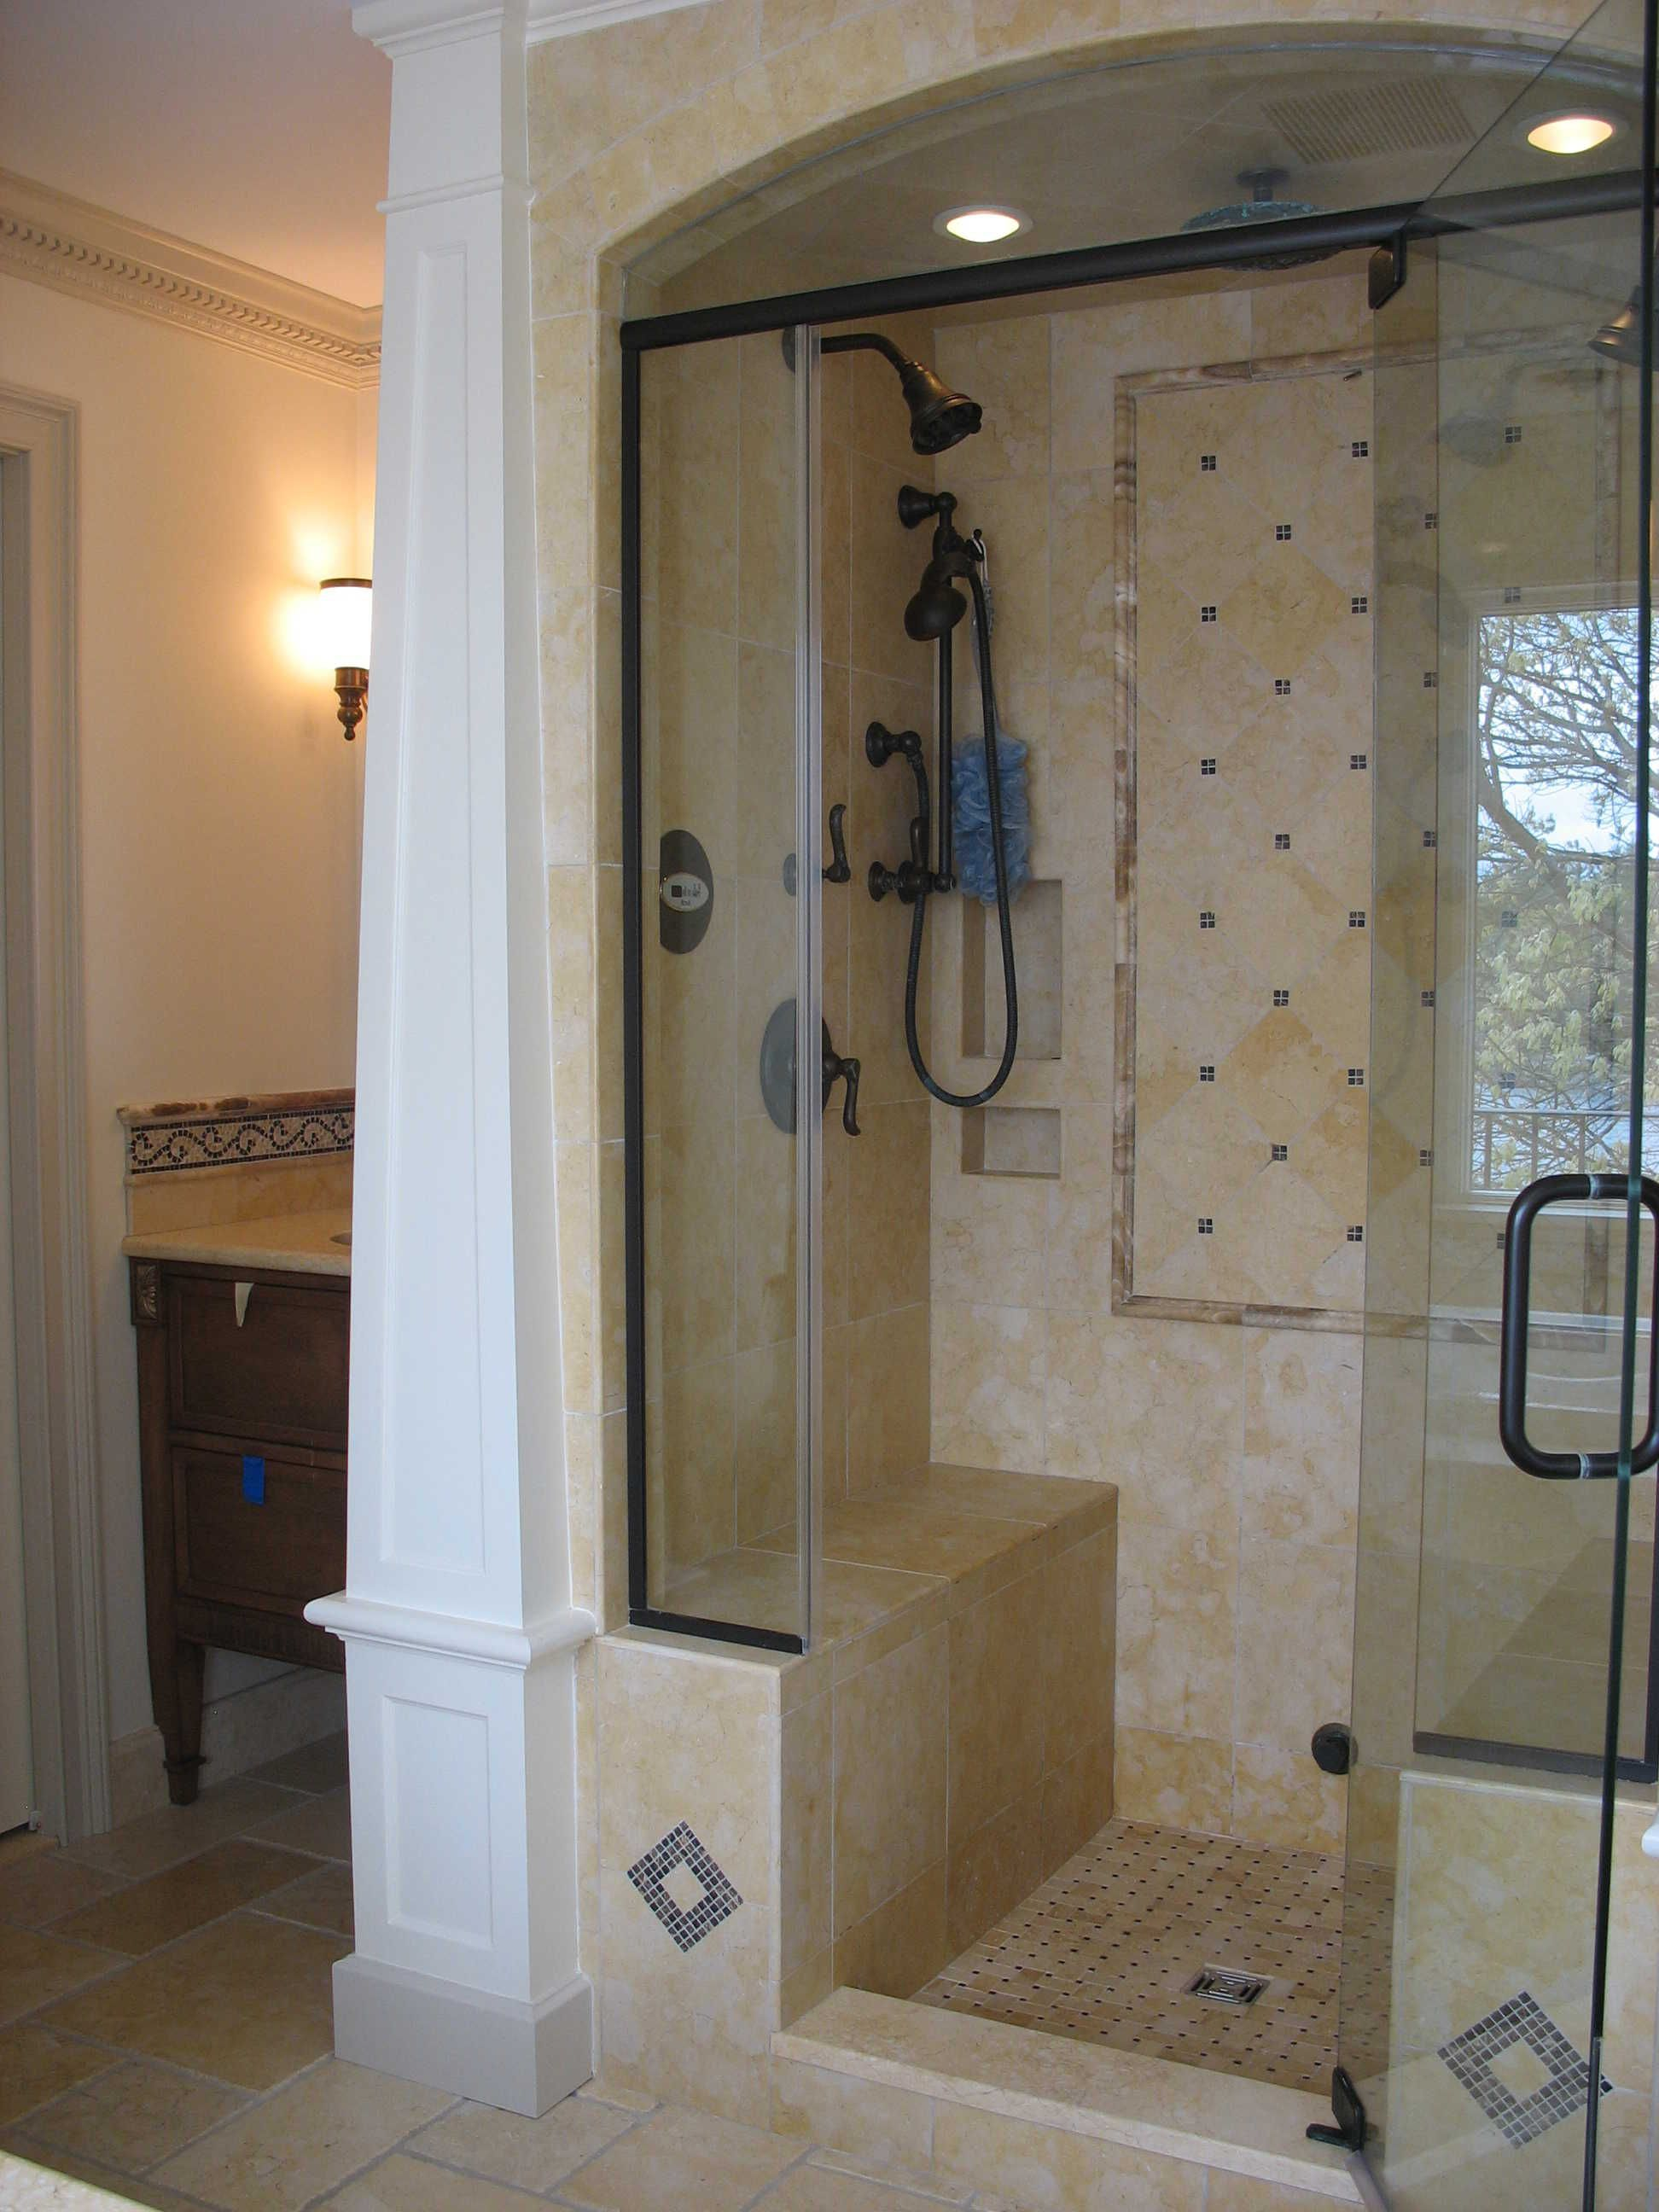 Walk in shower doors swing door single handle entry for Stand up shower ideas